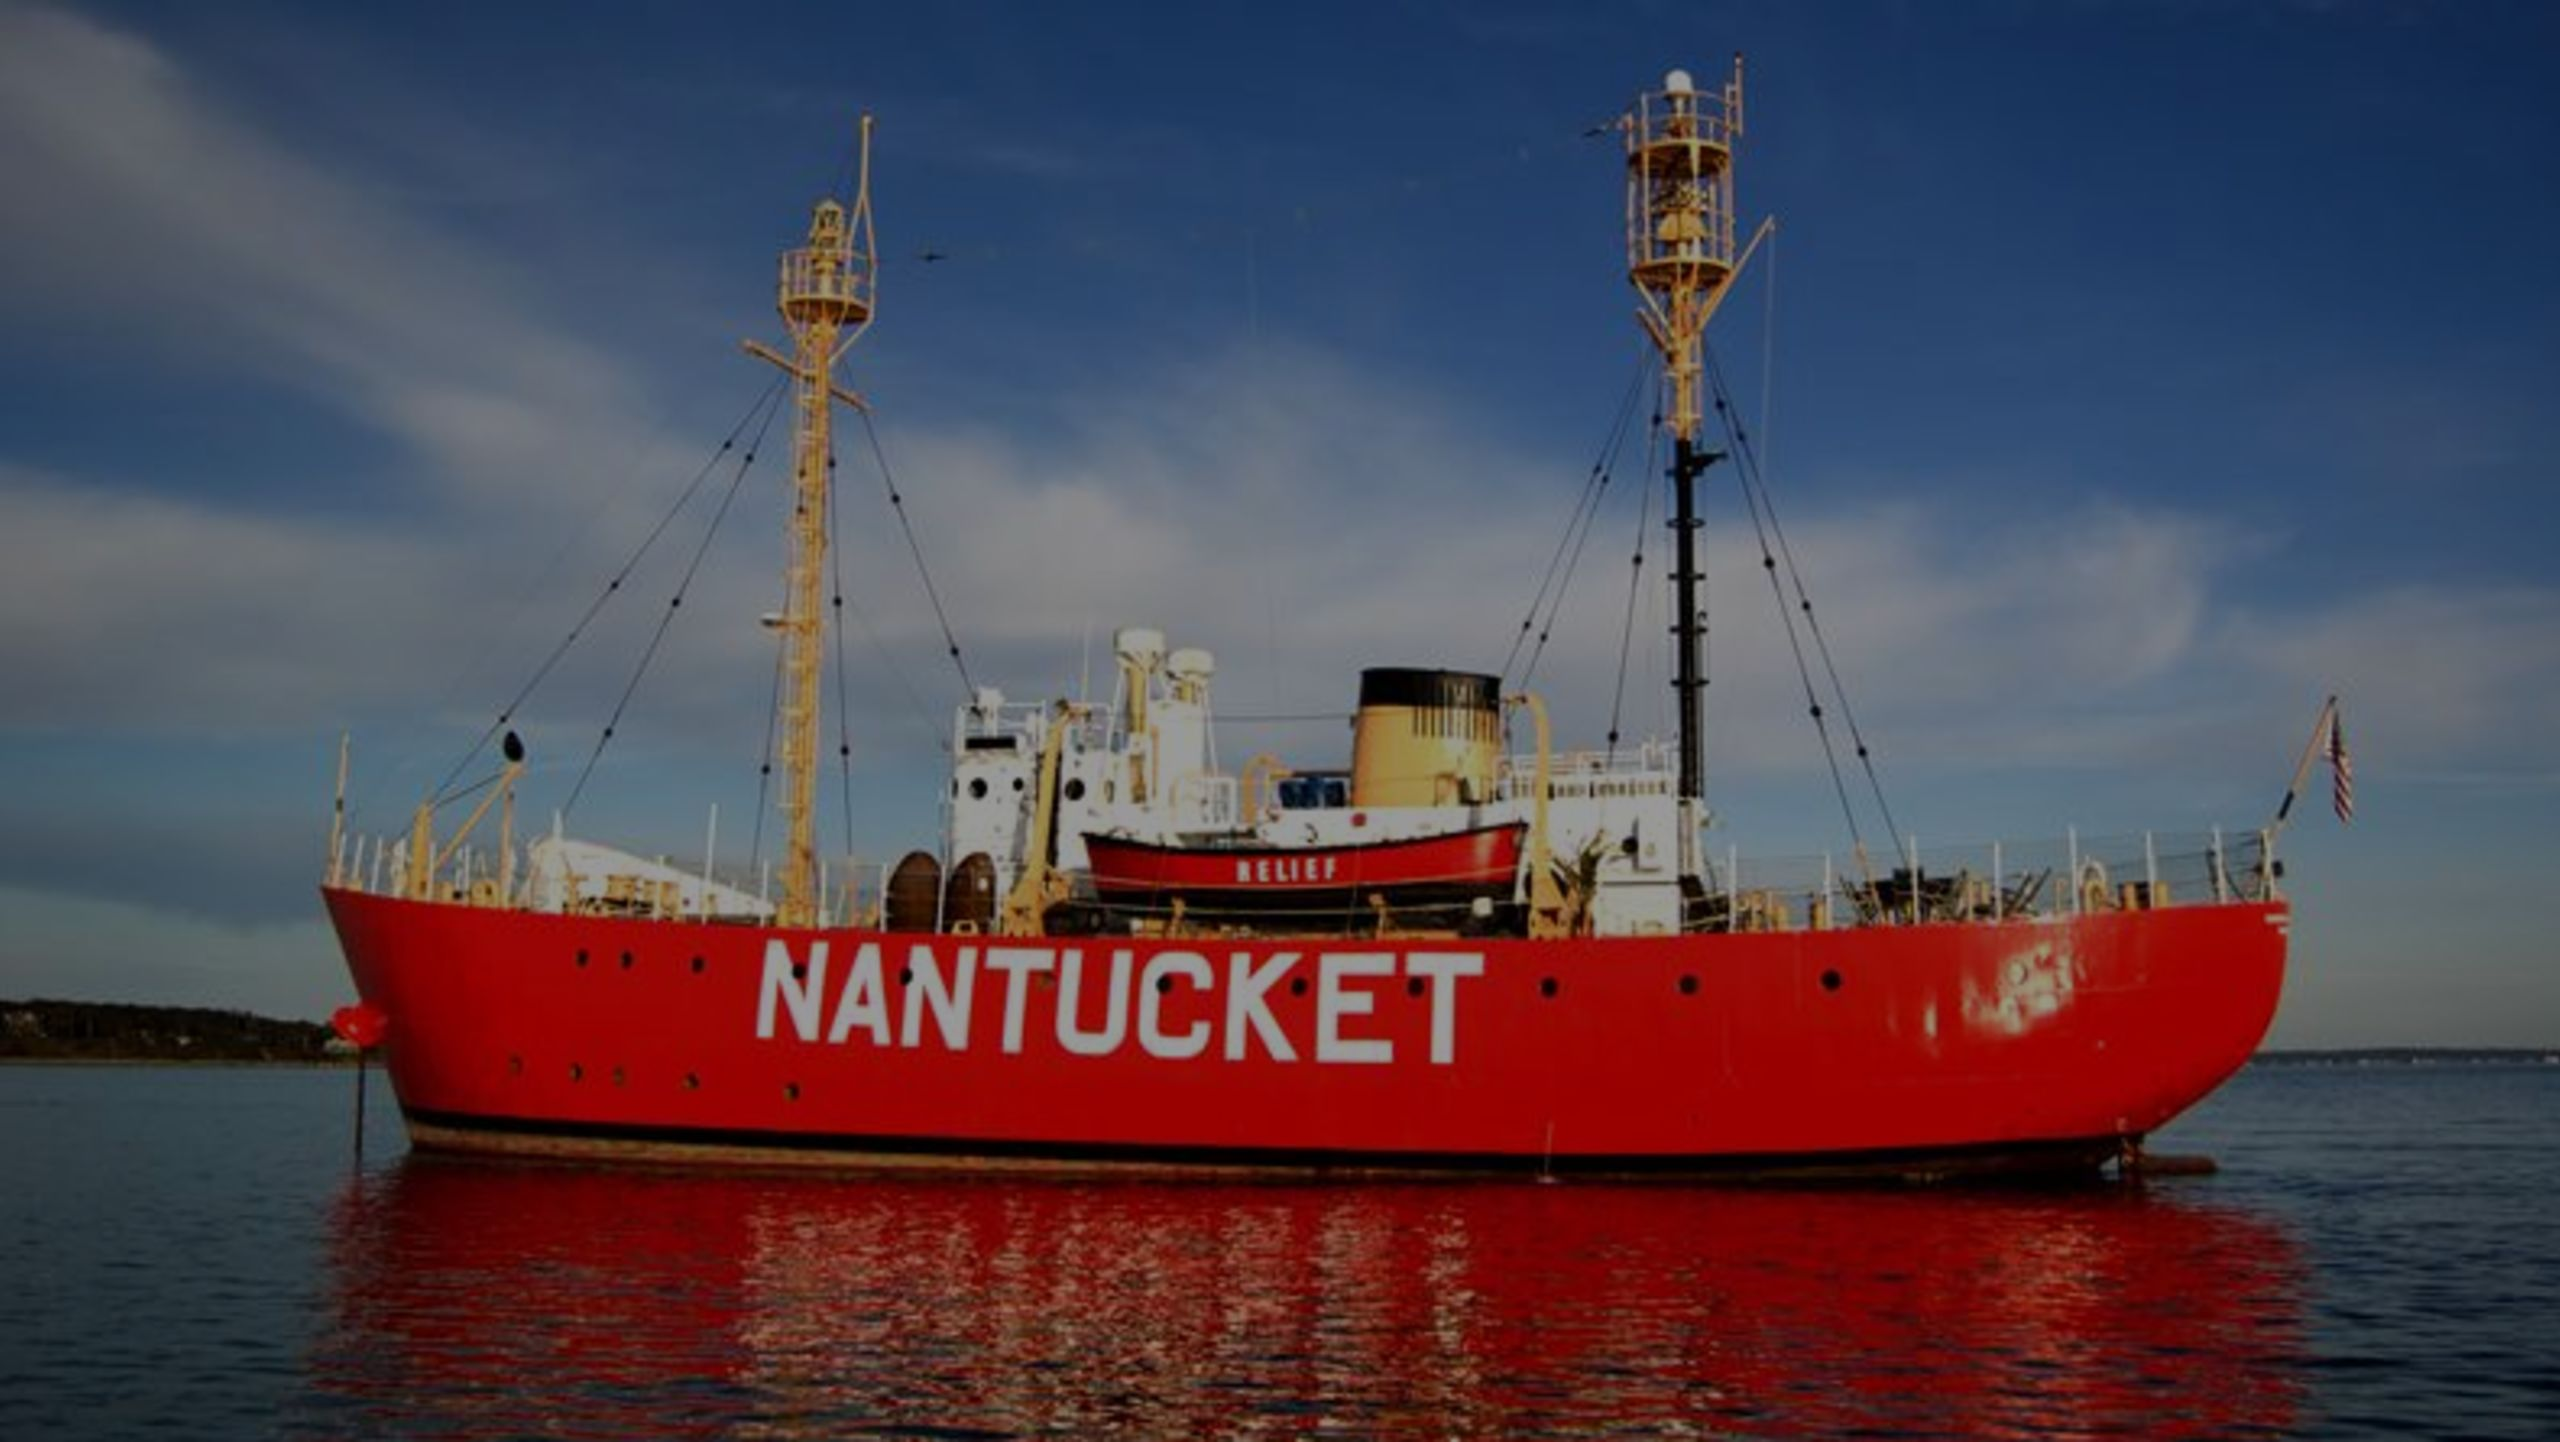 That red Nantucket ship in Boston Harbor? You can live there for $5.2M